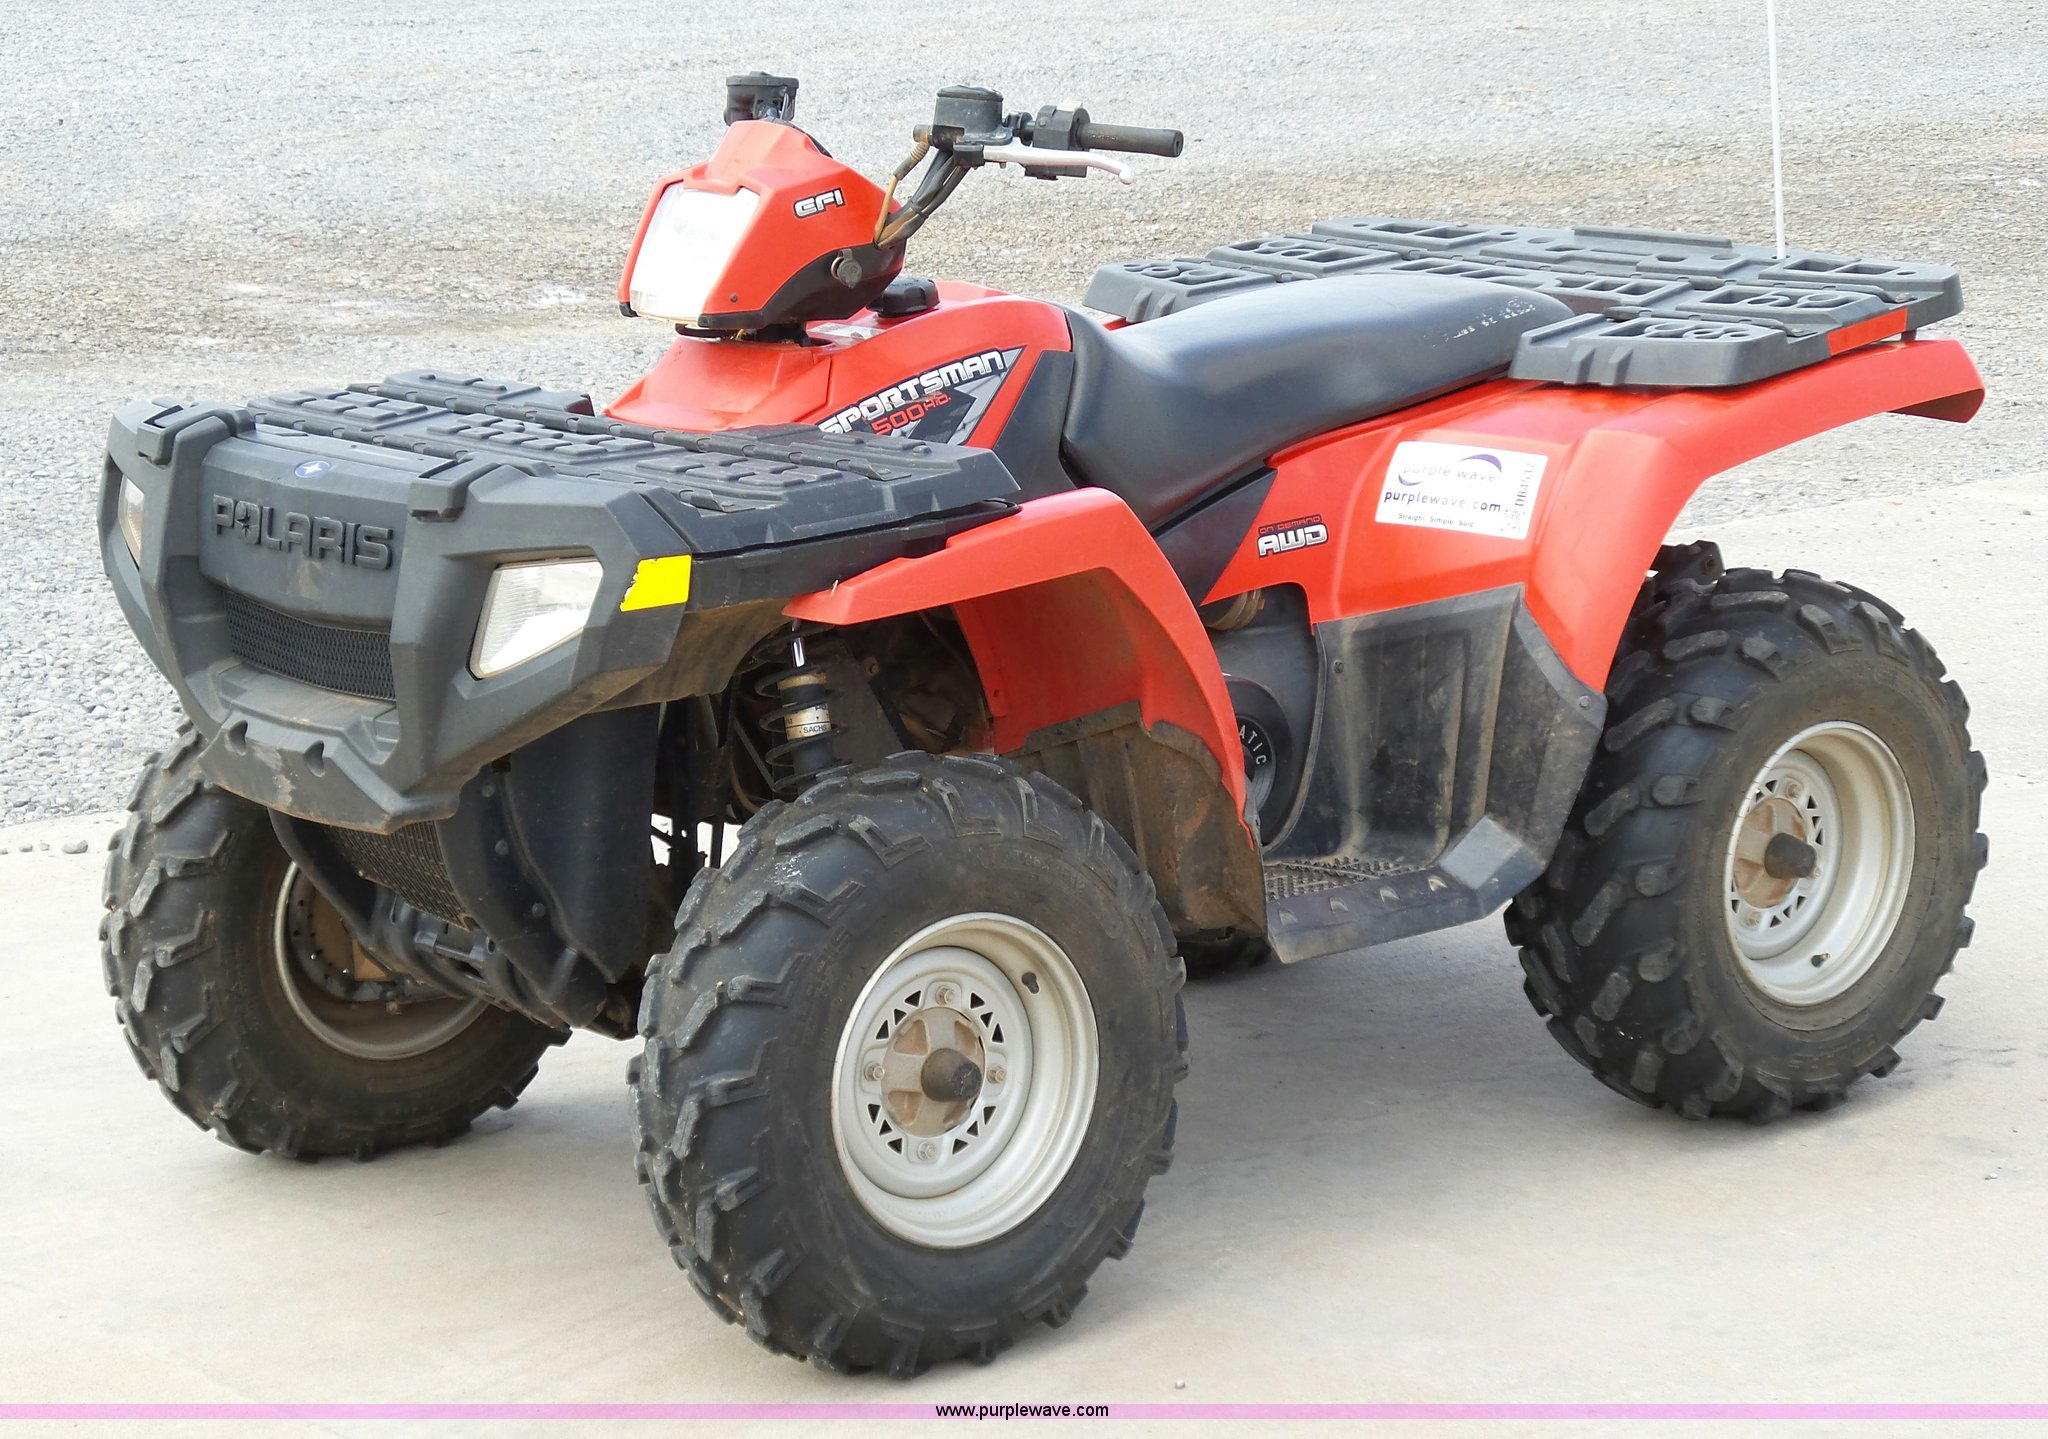 2008 polaris sportsman 500 atv item db4537 sold septemb. Black Bedroom Furniture Sets. Home Design Ideas